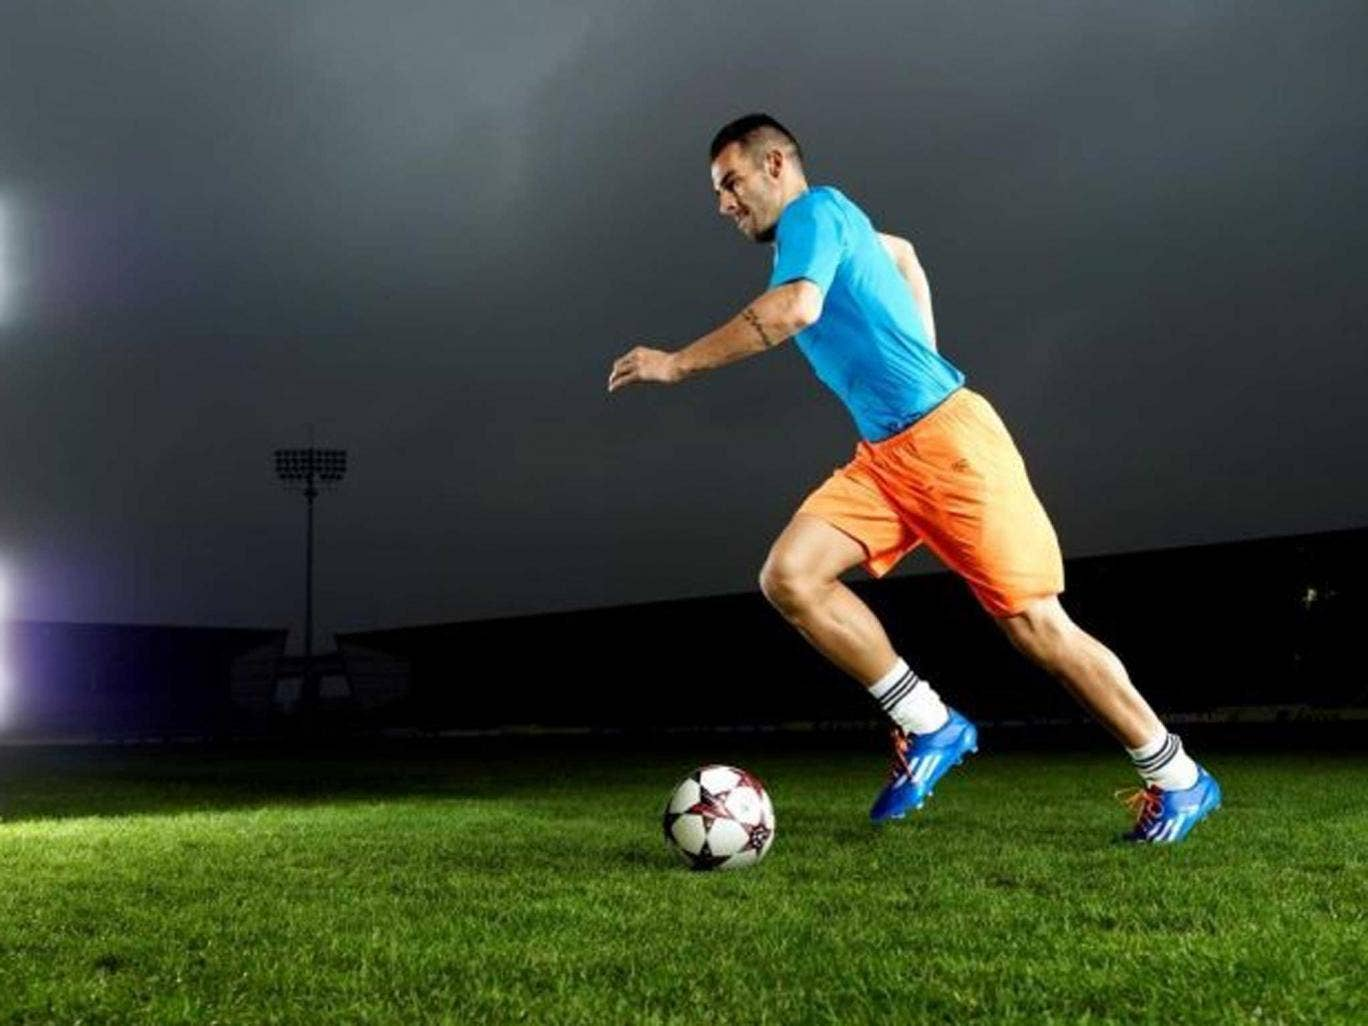 Forward looking: Alvaro Negredo has already scored a total of 12 goals for Manchester City and Spain this season